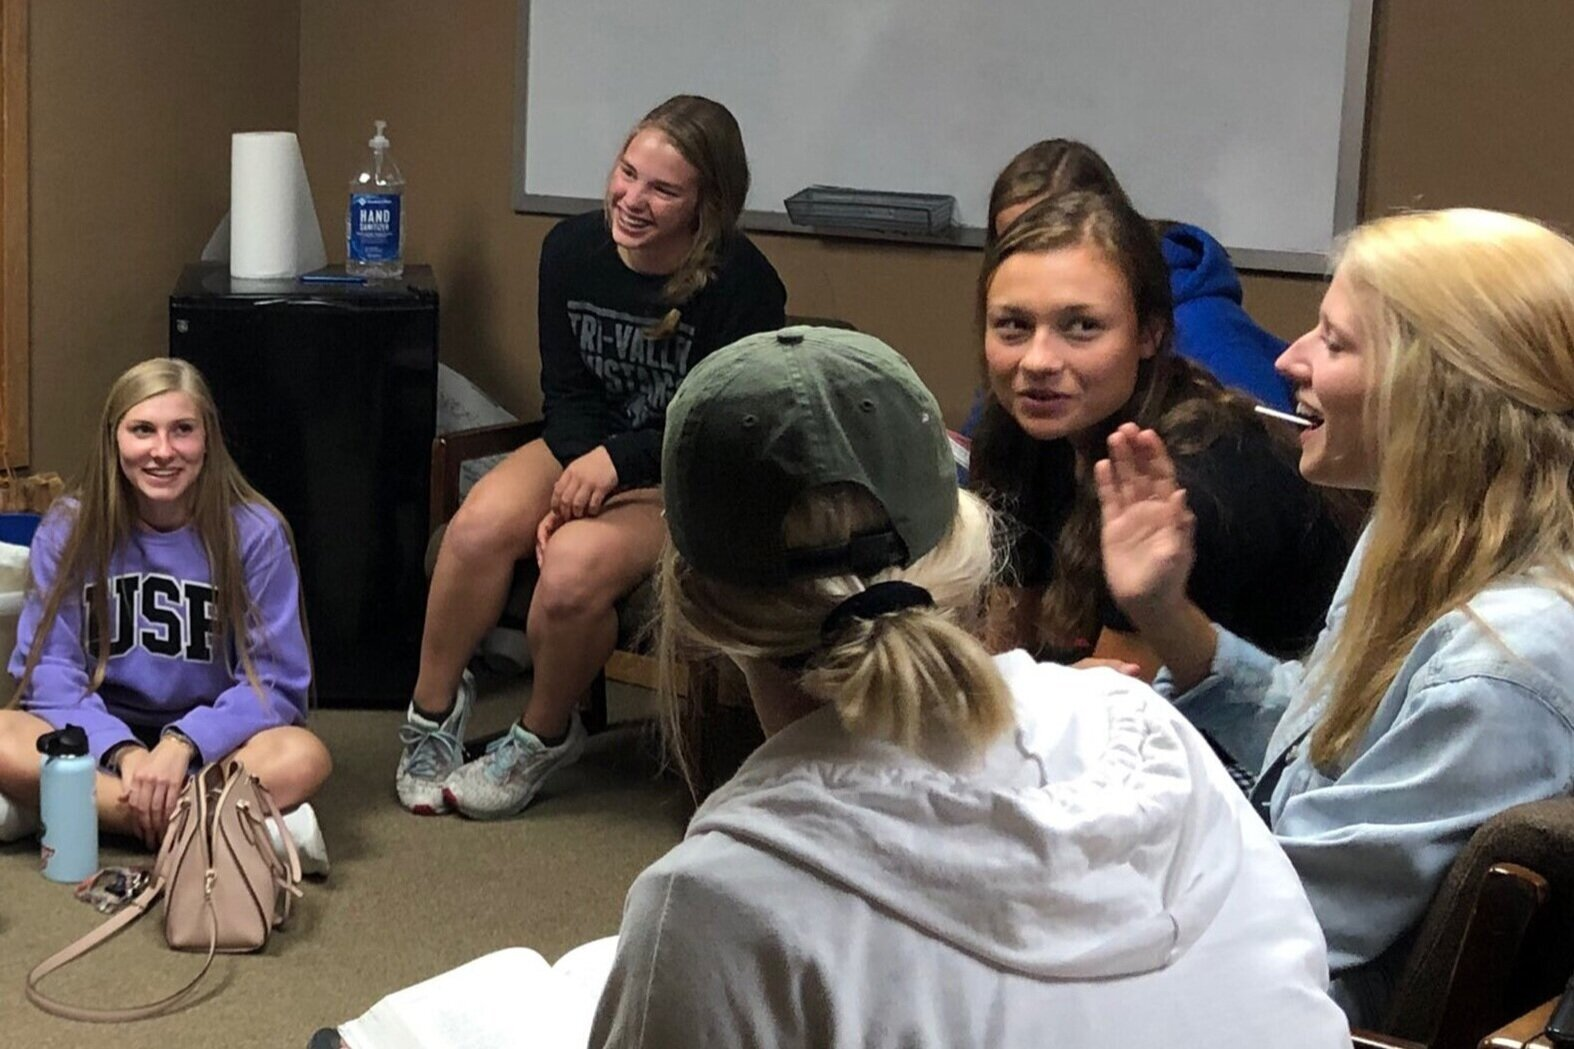 Get Connected - Getting involved can help you to connect and develop relationships with other Christ-followers.